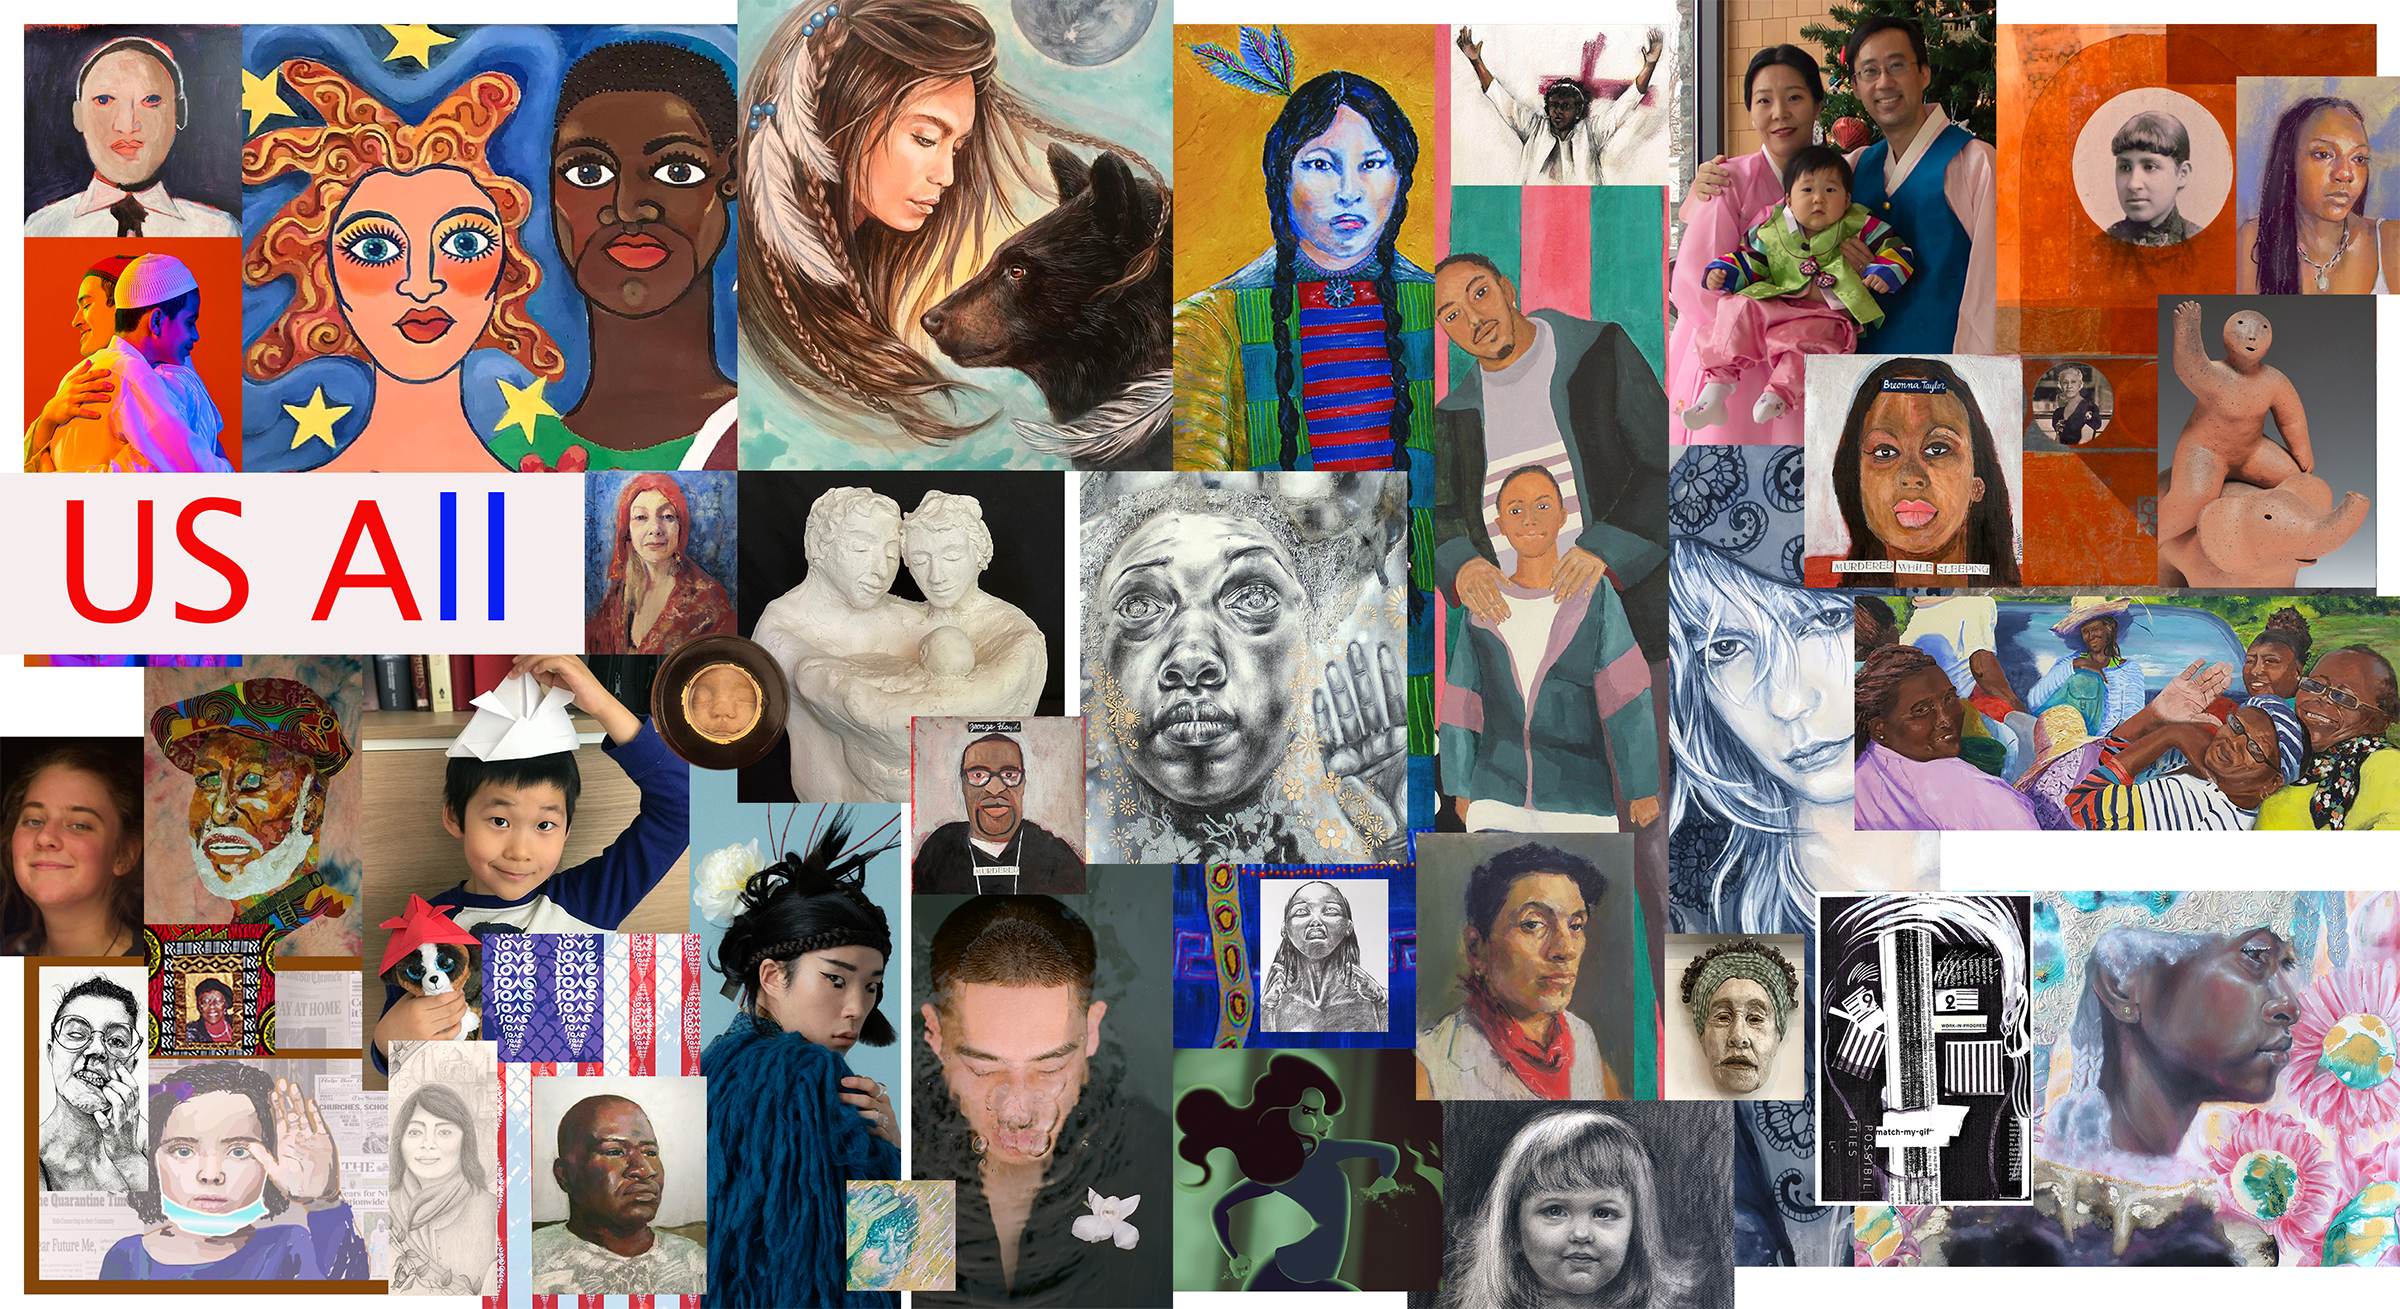 2021 US All Diversity & Inclusion Exhibition